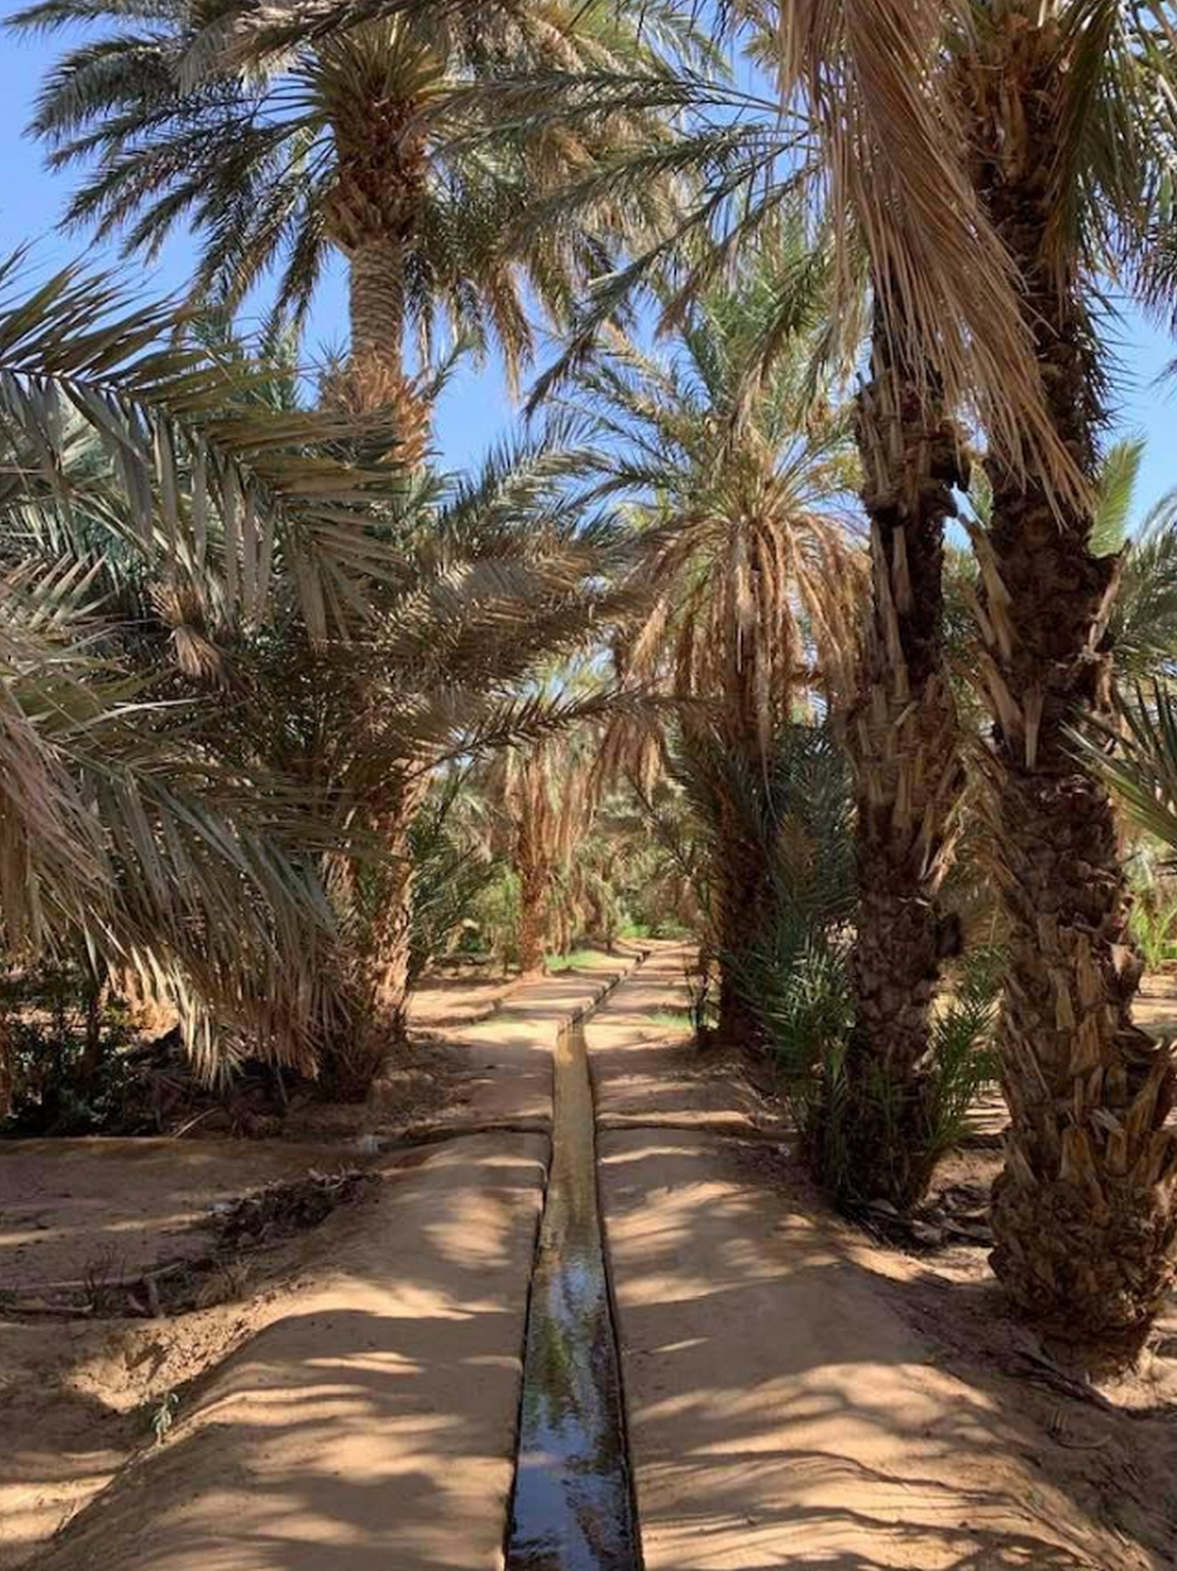 """<p><strong style=""""color: rgb(161, 0, 0);""""><em>Wonderful place! The desert is beautiful, the views are amazing! We stayed not in the Merzoug itself, but in a small oasis nearby. The oasis itself is very interesting. It seems to me there is no need to take an additional tour. We independently went to the flamingo lake, the flamingos were there. We climbed the dune to sunset and sunrise, walked around the oasis. I recommend going out into the desert in the morning and in the evening, in the afternoon a lot of ATVs ride and crush the impression.</em></strong></p>"""